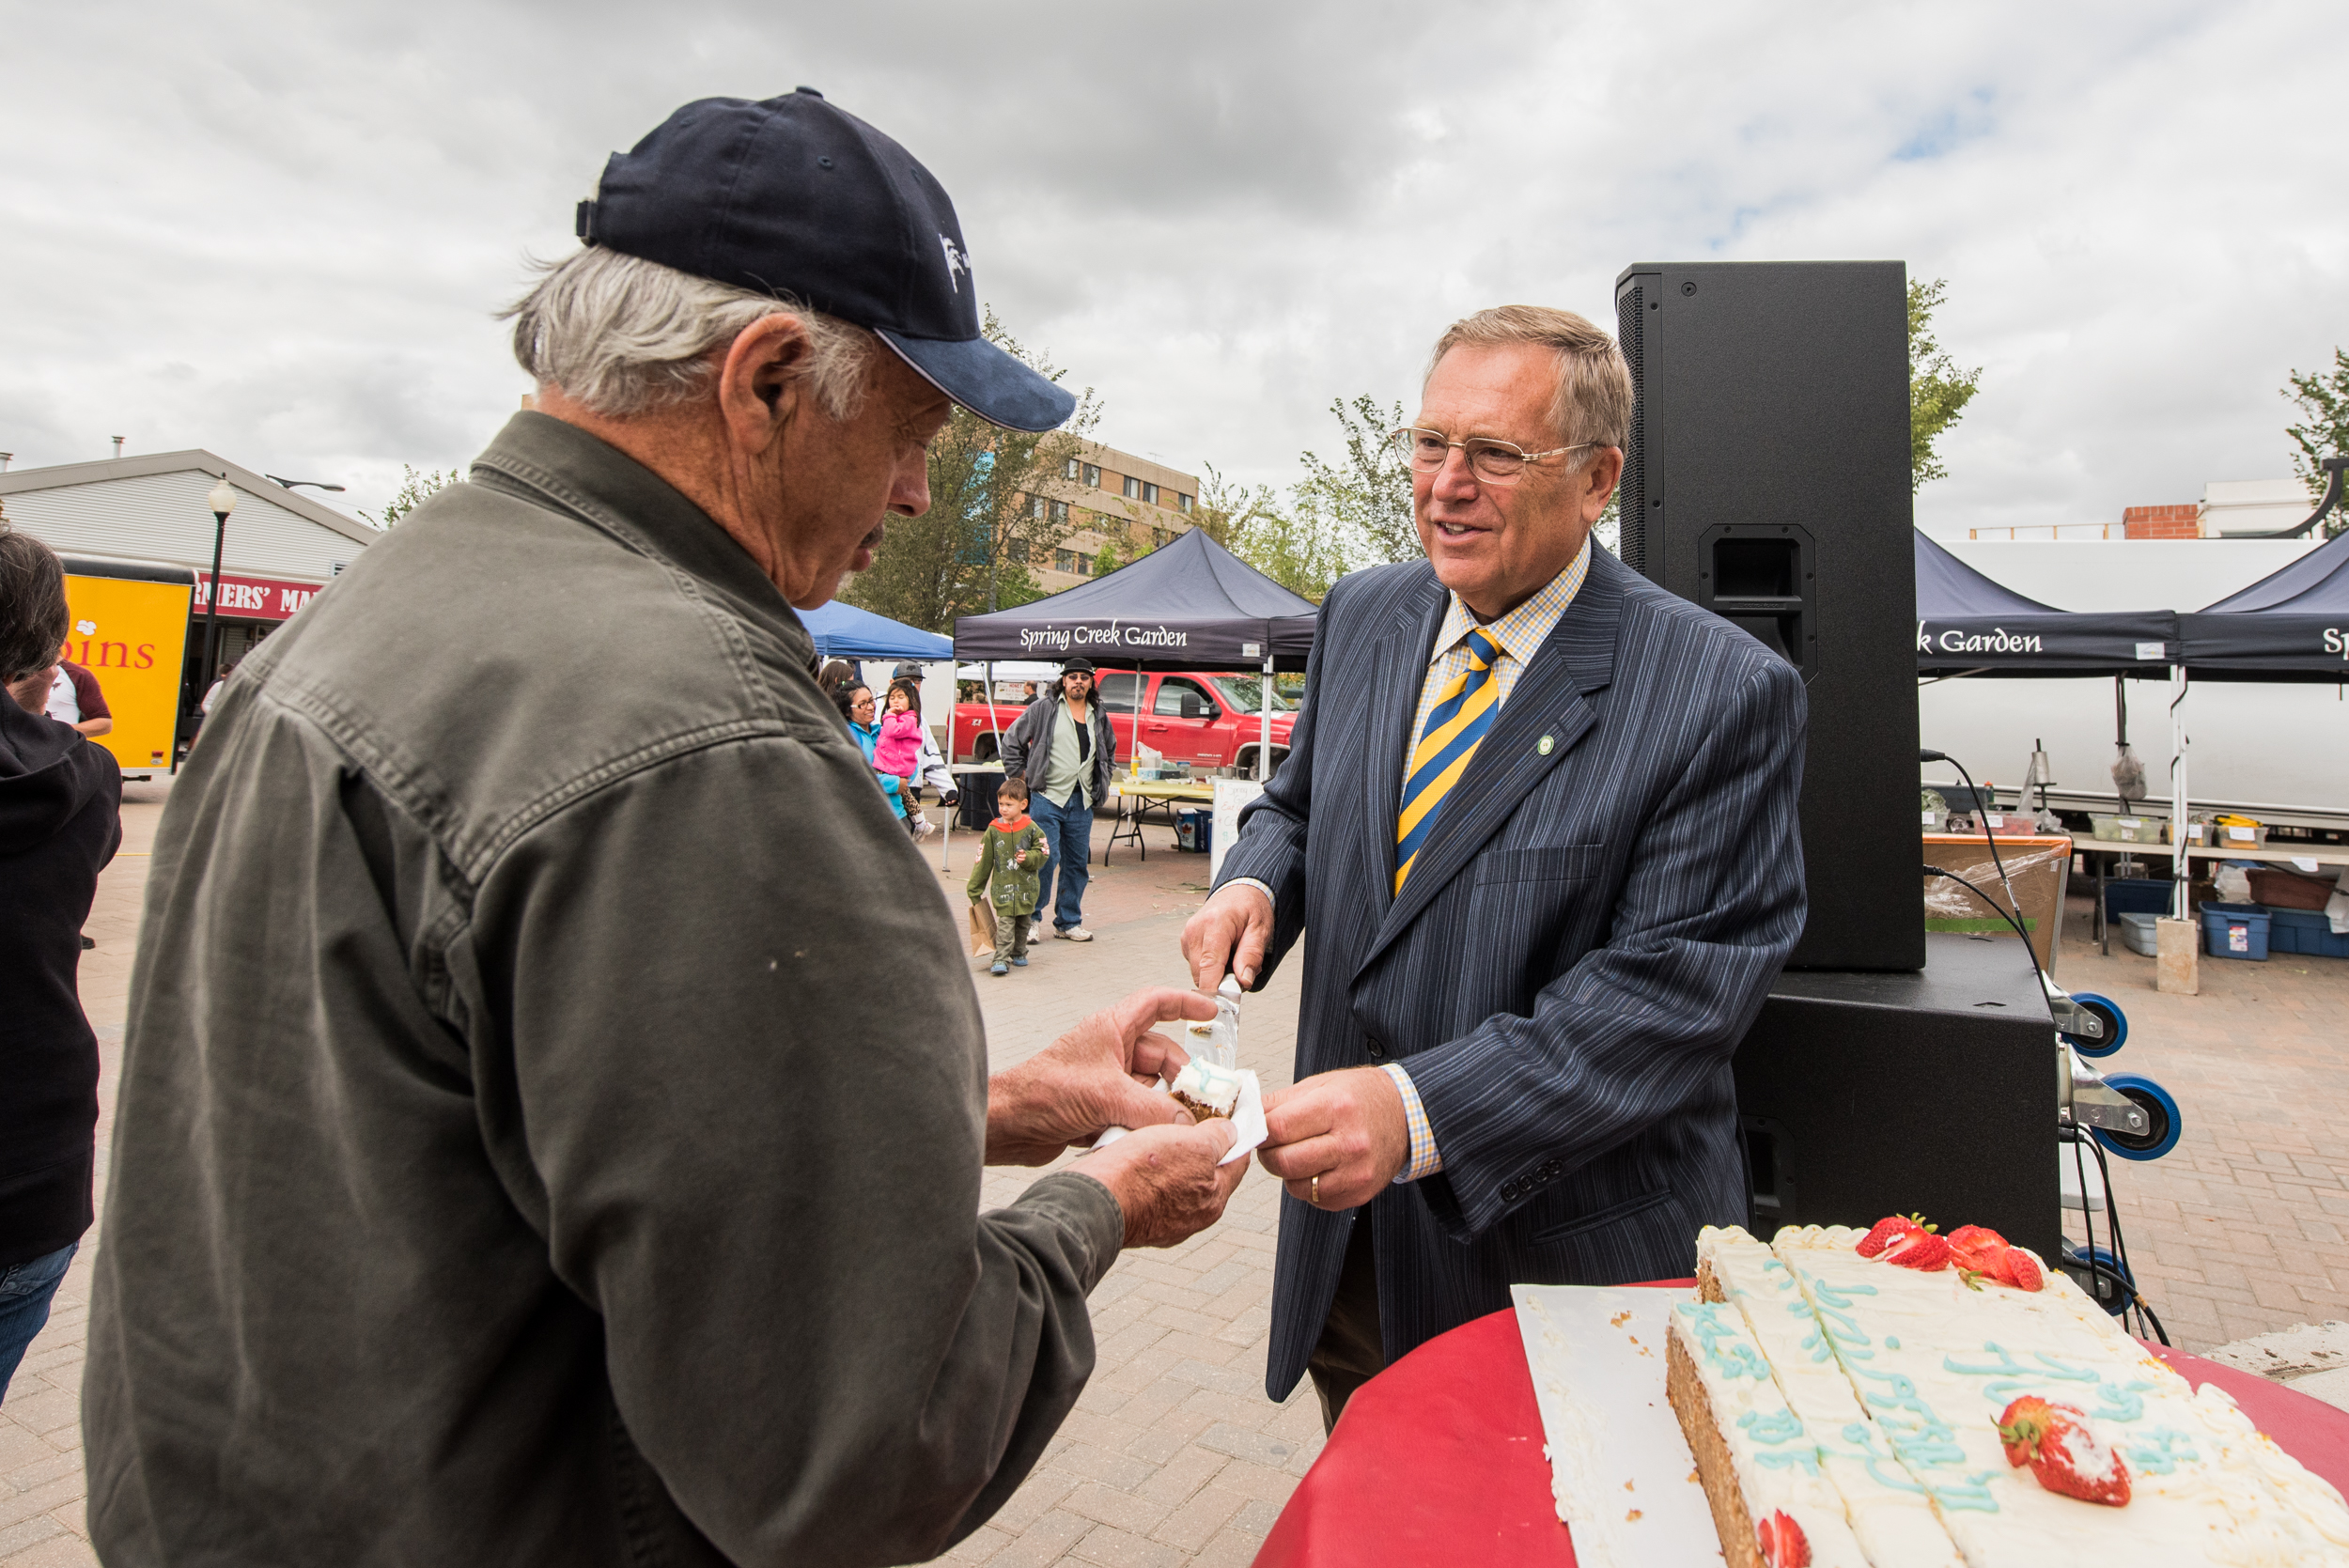 SASKATOON,SK--AUGUST 22, 2015--Mayor Don Atchison hands out cake to the crowd gathered for the 40th anniversary of Saskatoon's Farmers Market in Saskatoon, SK. on Saturday, August 22, 2015. (MATT SMITH/THE STAR PHOENIX)